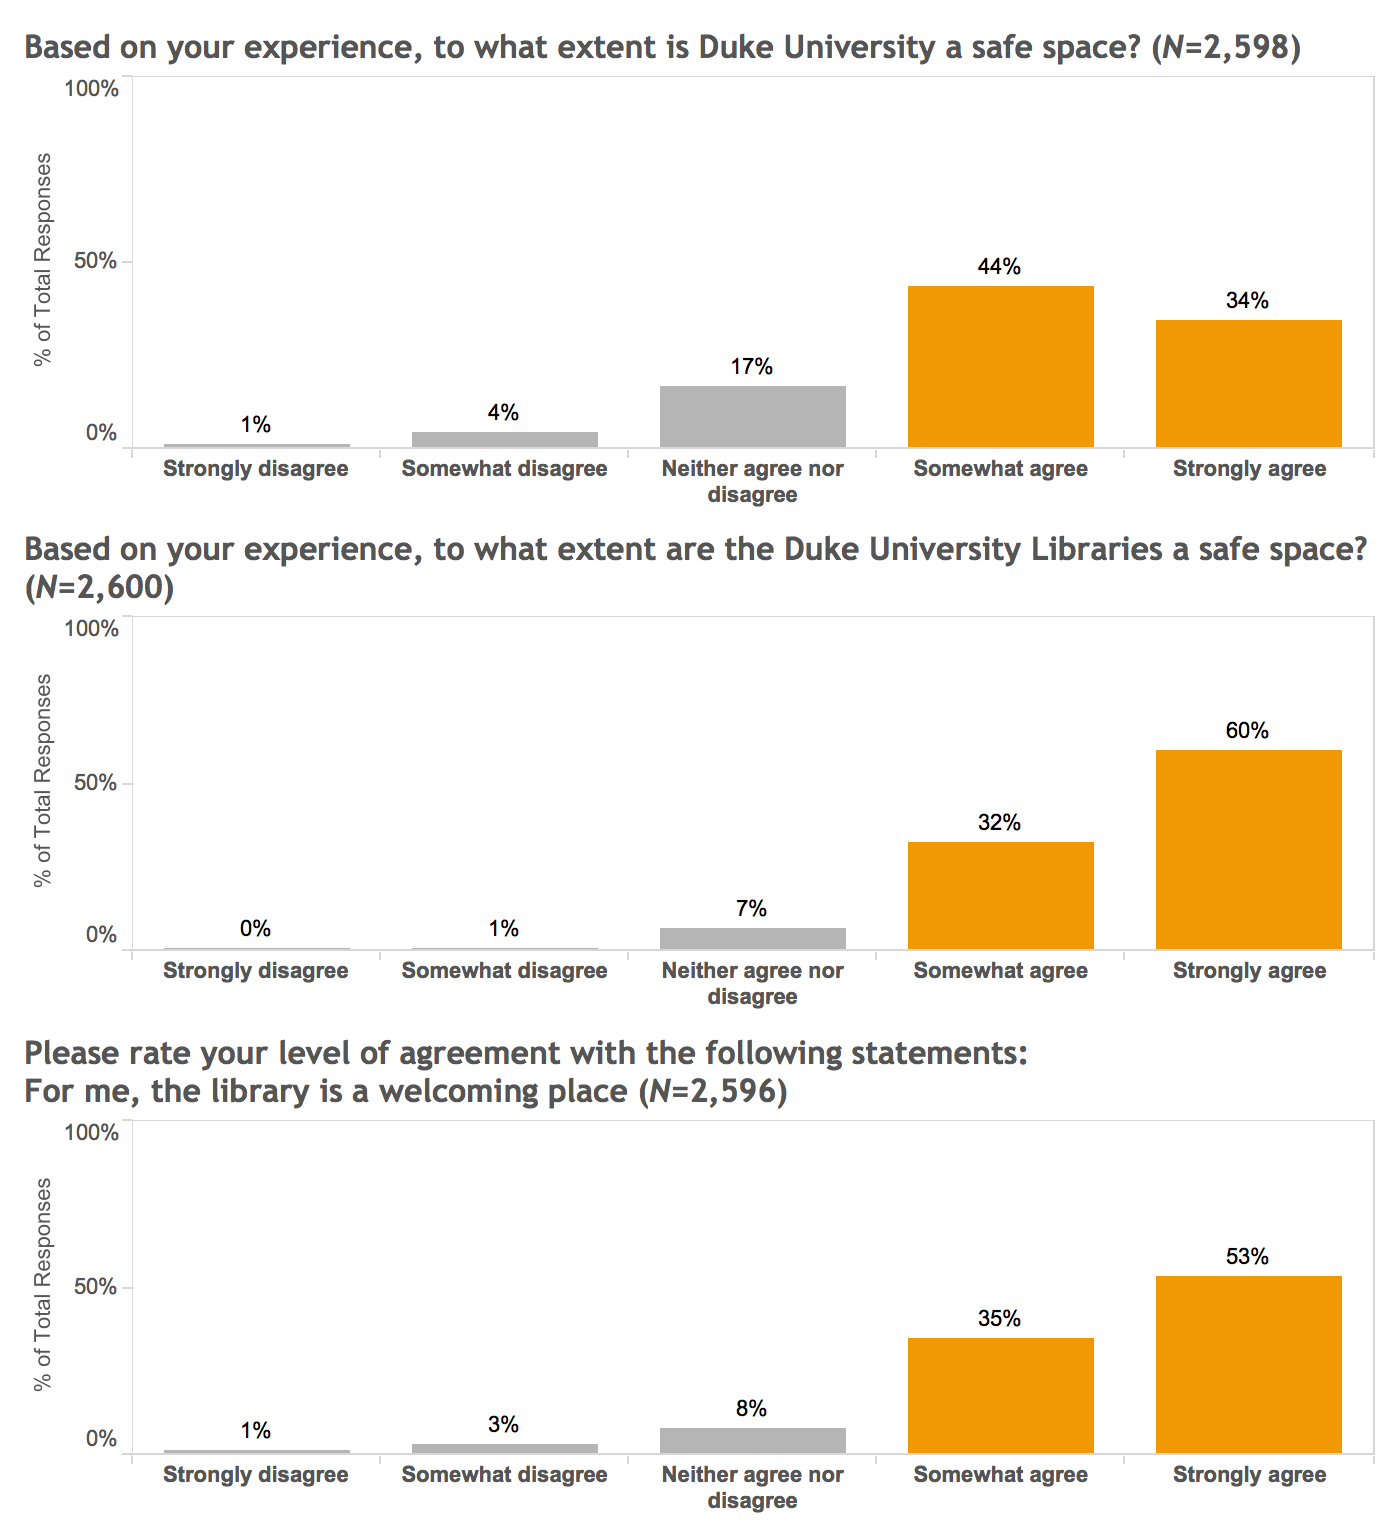 Three related bar charts. The first chart shows that when asked if Duke University is a safe space, 44% somewhat agree and 34% strongly agree. The second chart shows that when asked if the Duke Libraries are a safe space, 32% somewhat agree and 60% strongly agree. The third chart shows that when asked if the library is a welcoming place, 35% somewhat agree and 53% strongly agree.